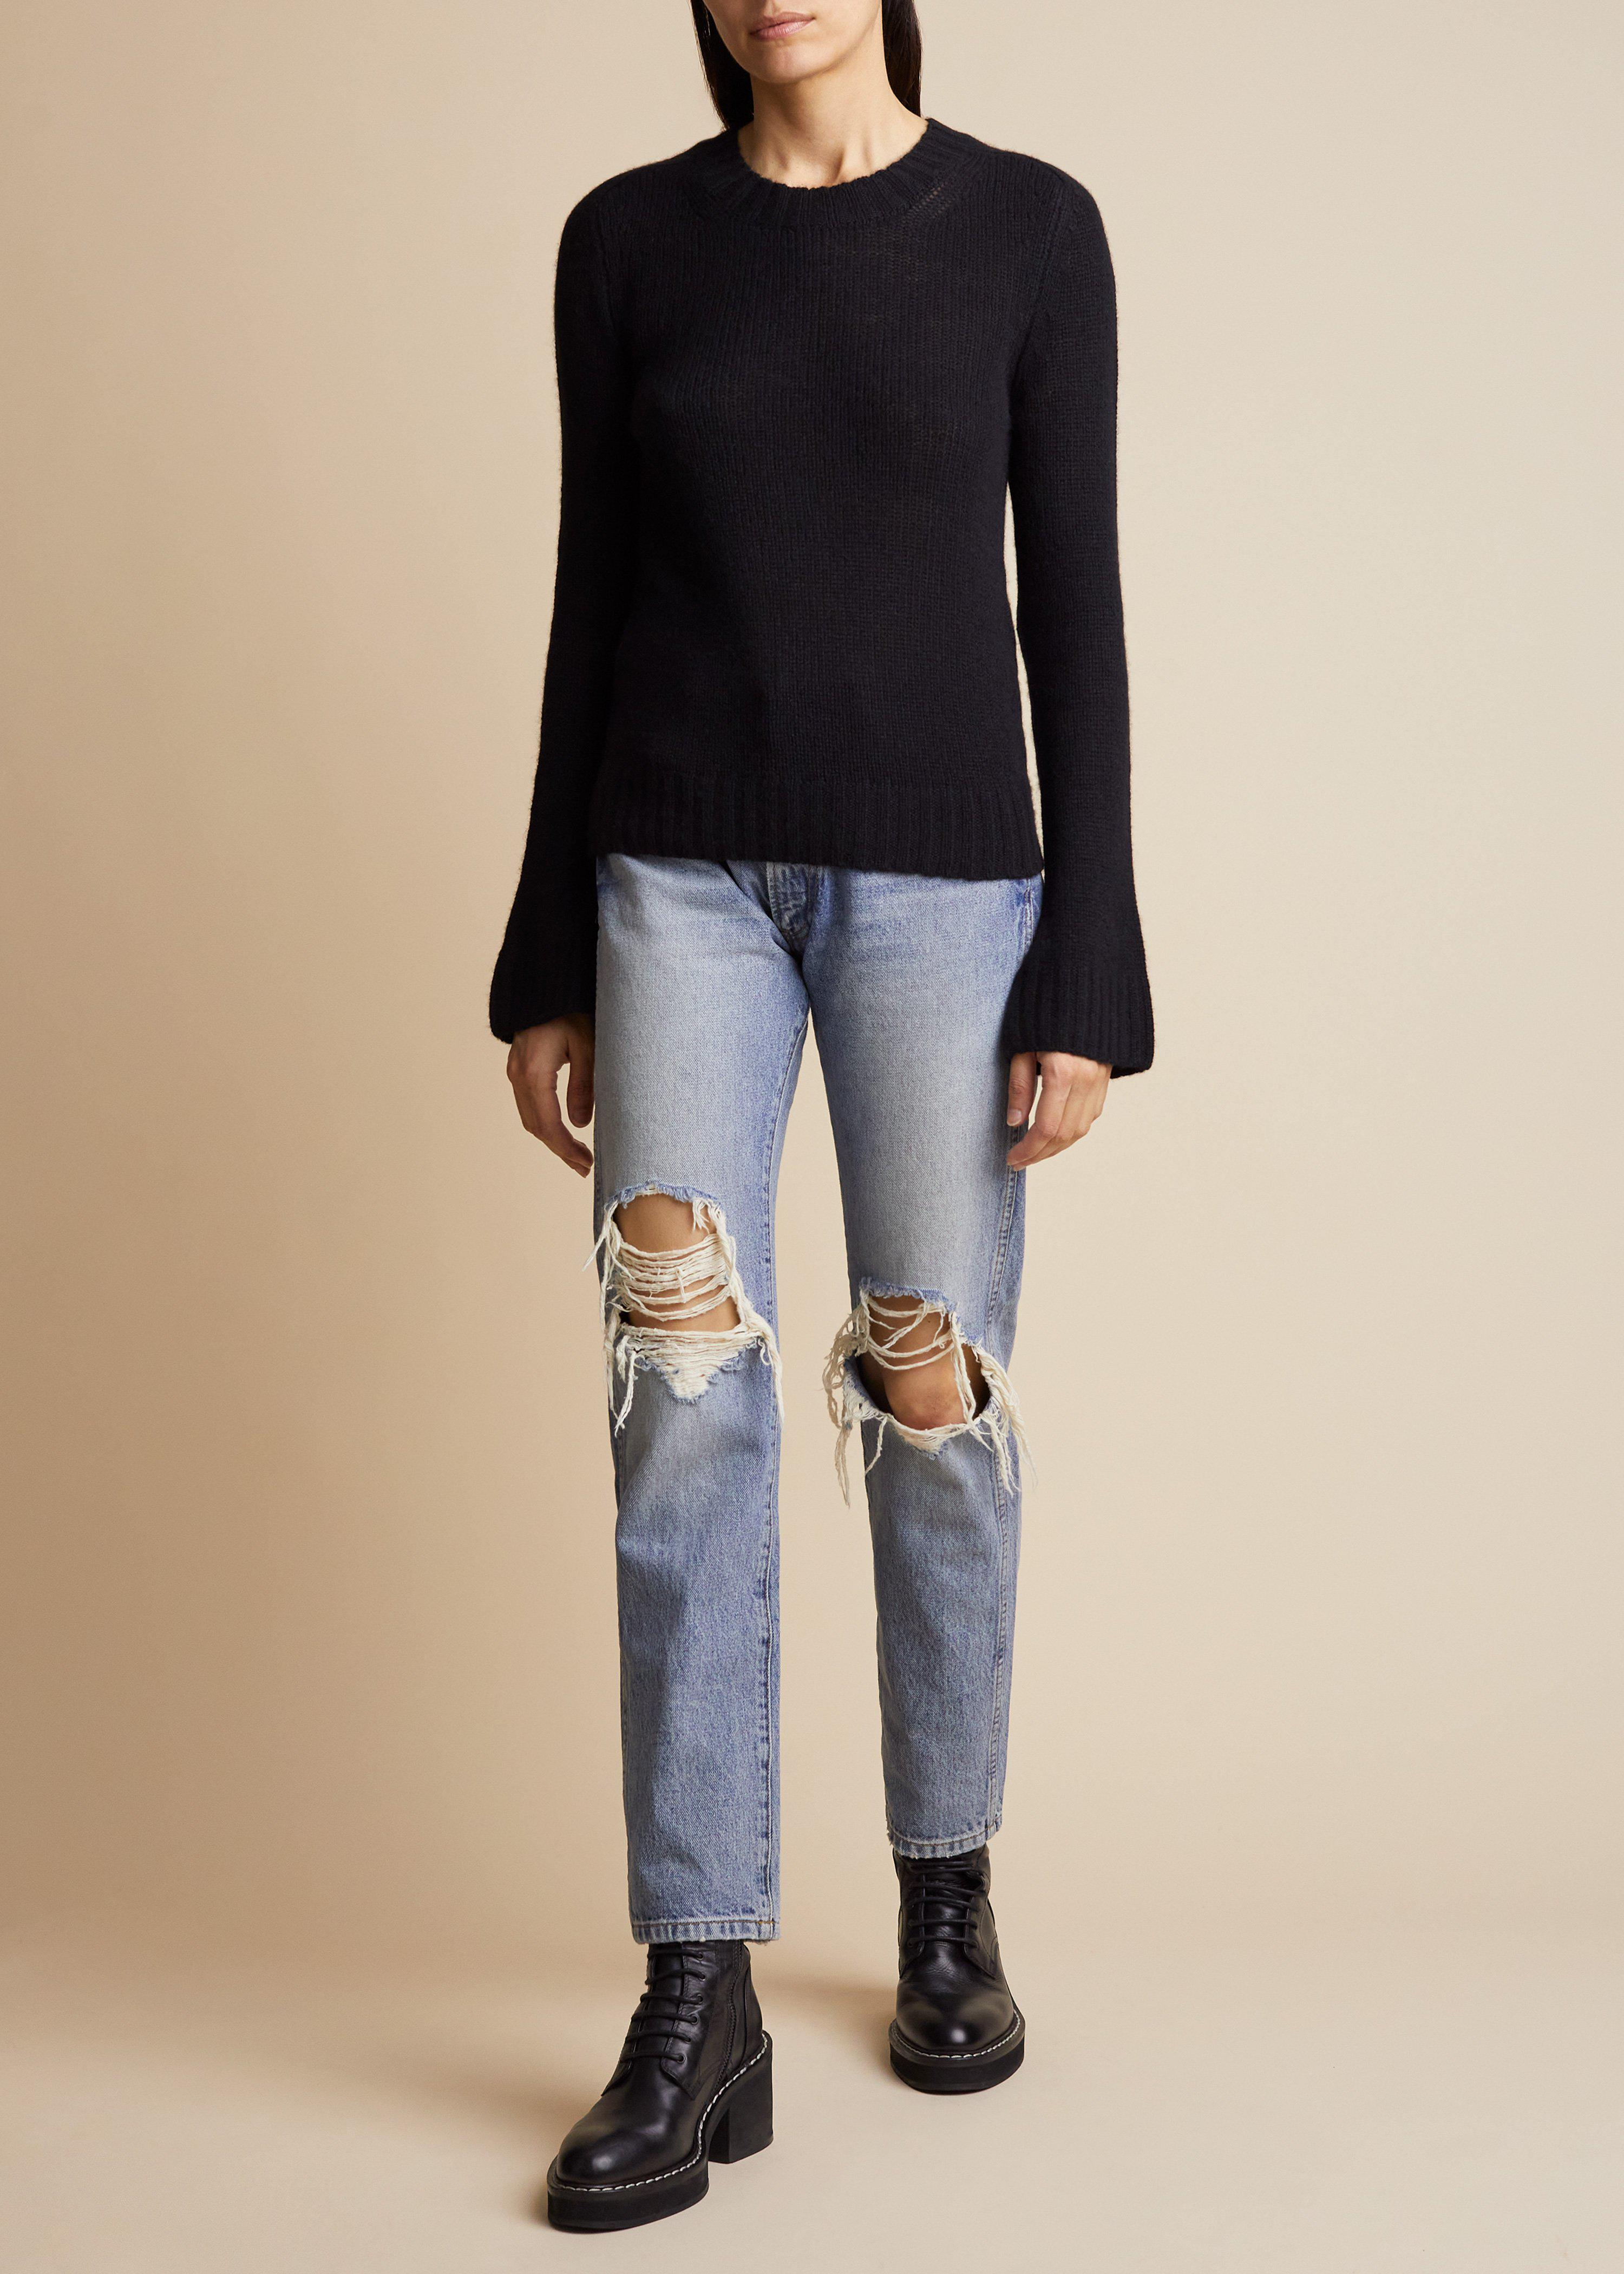 The Mary Jane Sweater in Black 1